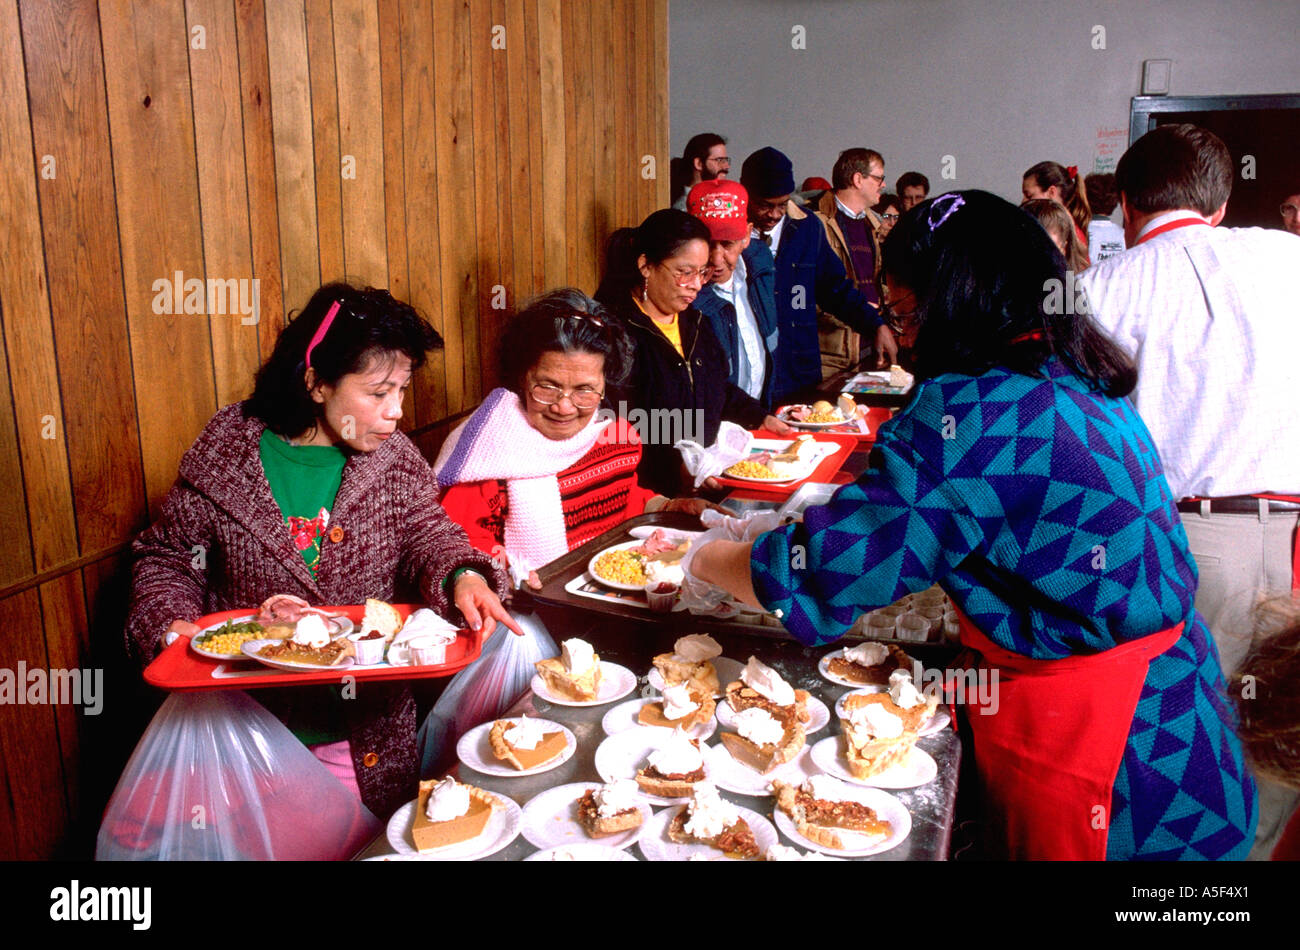 Hmong family being served Christmas dinner at church soup kitchen